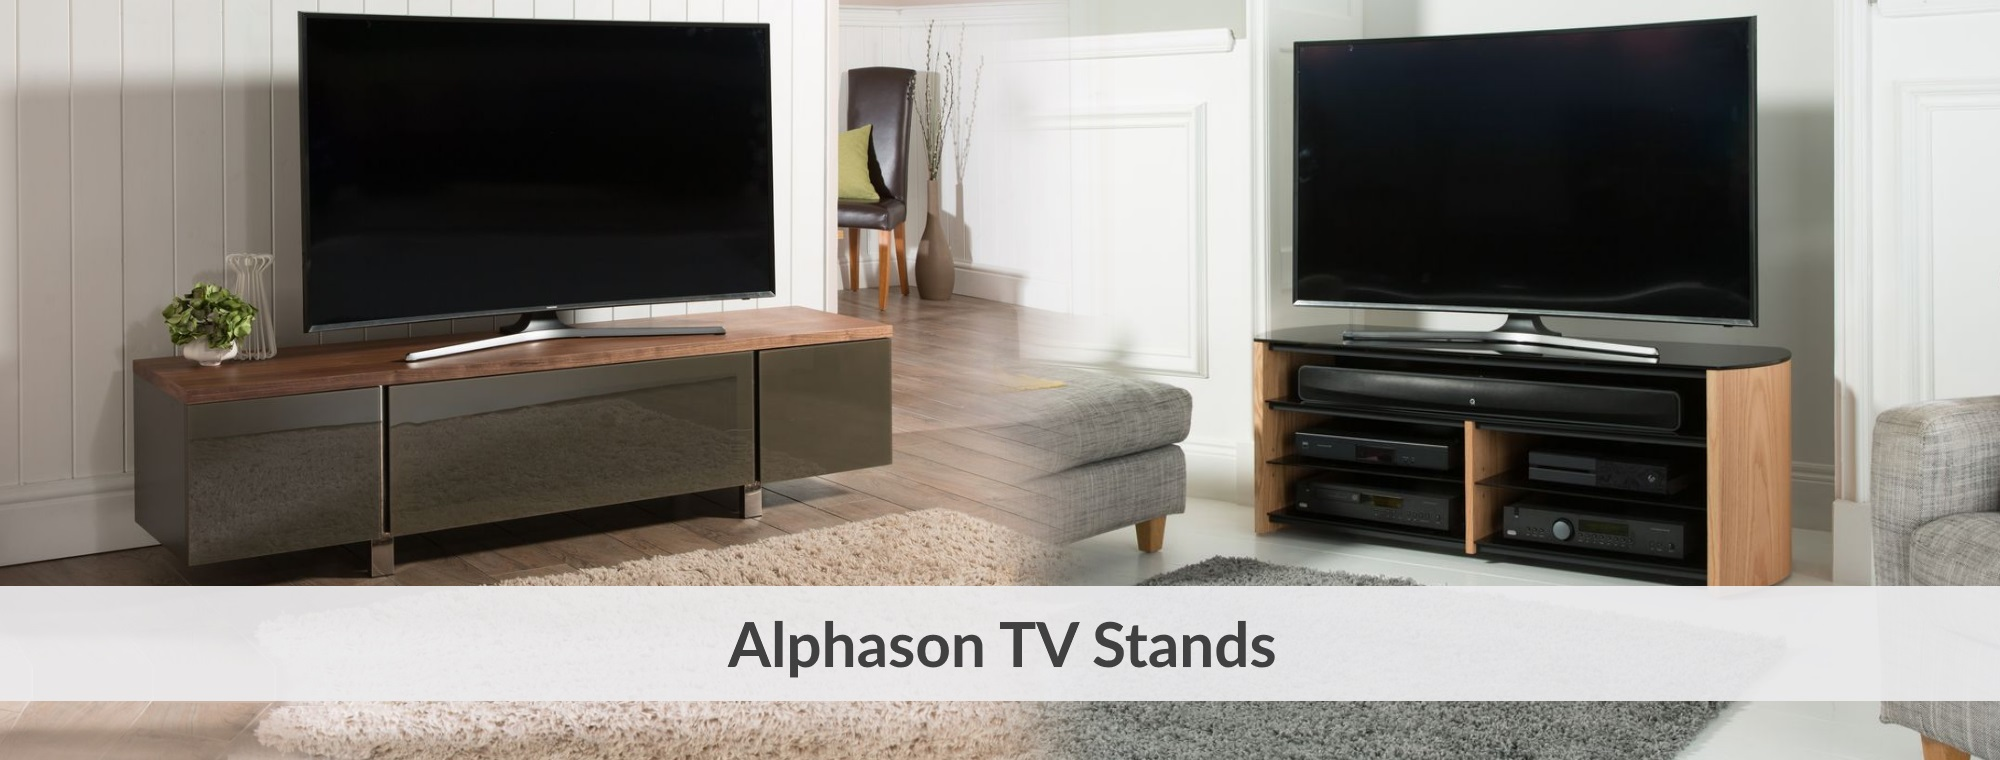 Alphason TV Stands and TV Cabinets